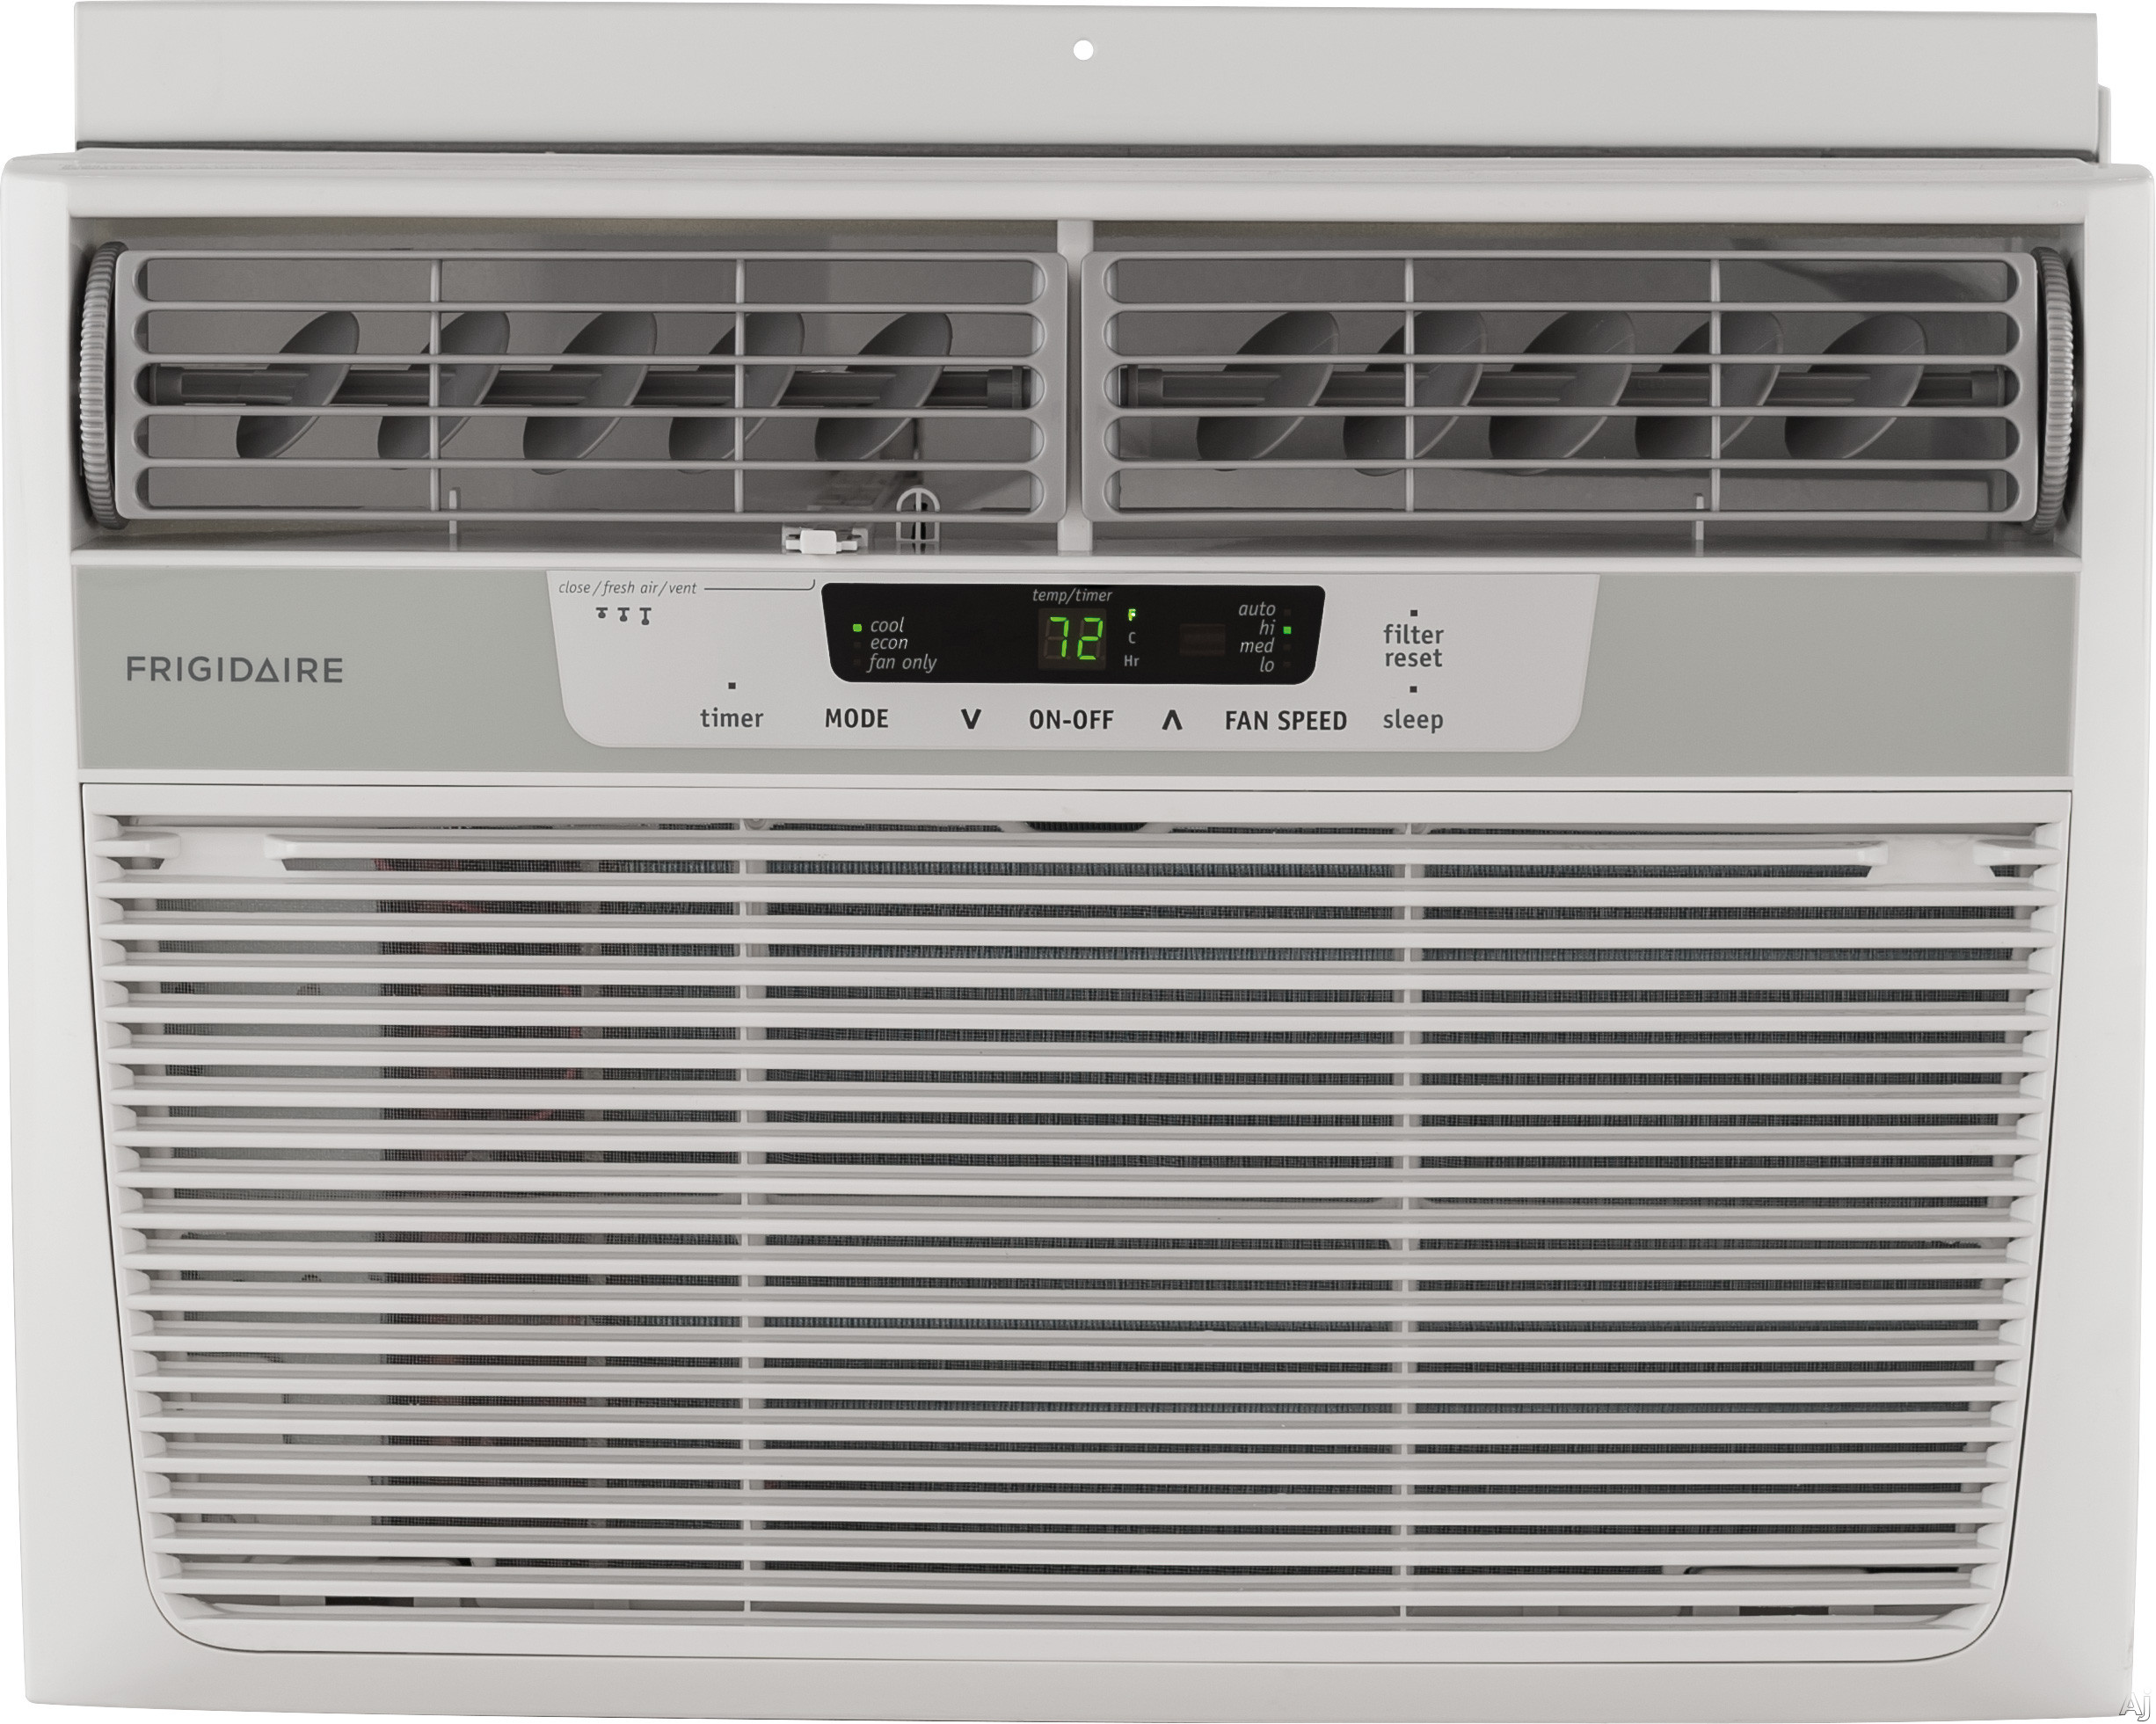 Frigidaire FFRA1022R1 10,000 BTU Window Air Conditioner with 10.9 EER, R-410A Refrigerant, 2.7 Pts/Hr Dehumidification, 450 sq. ft. Cooling Area, Auto Restart and Remote Control FFRA1022R1